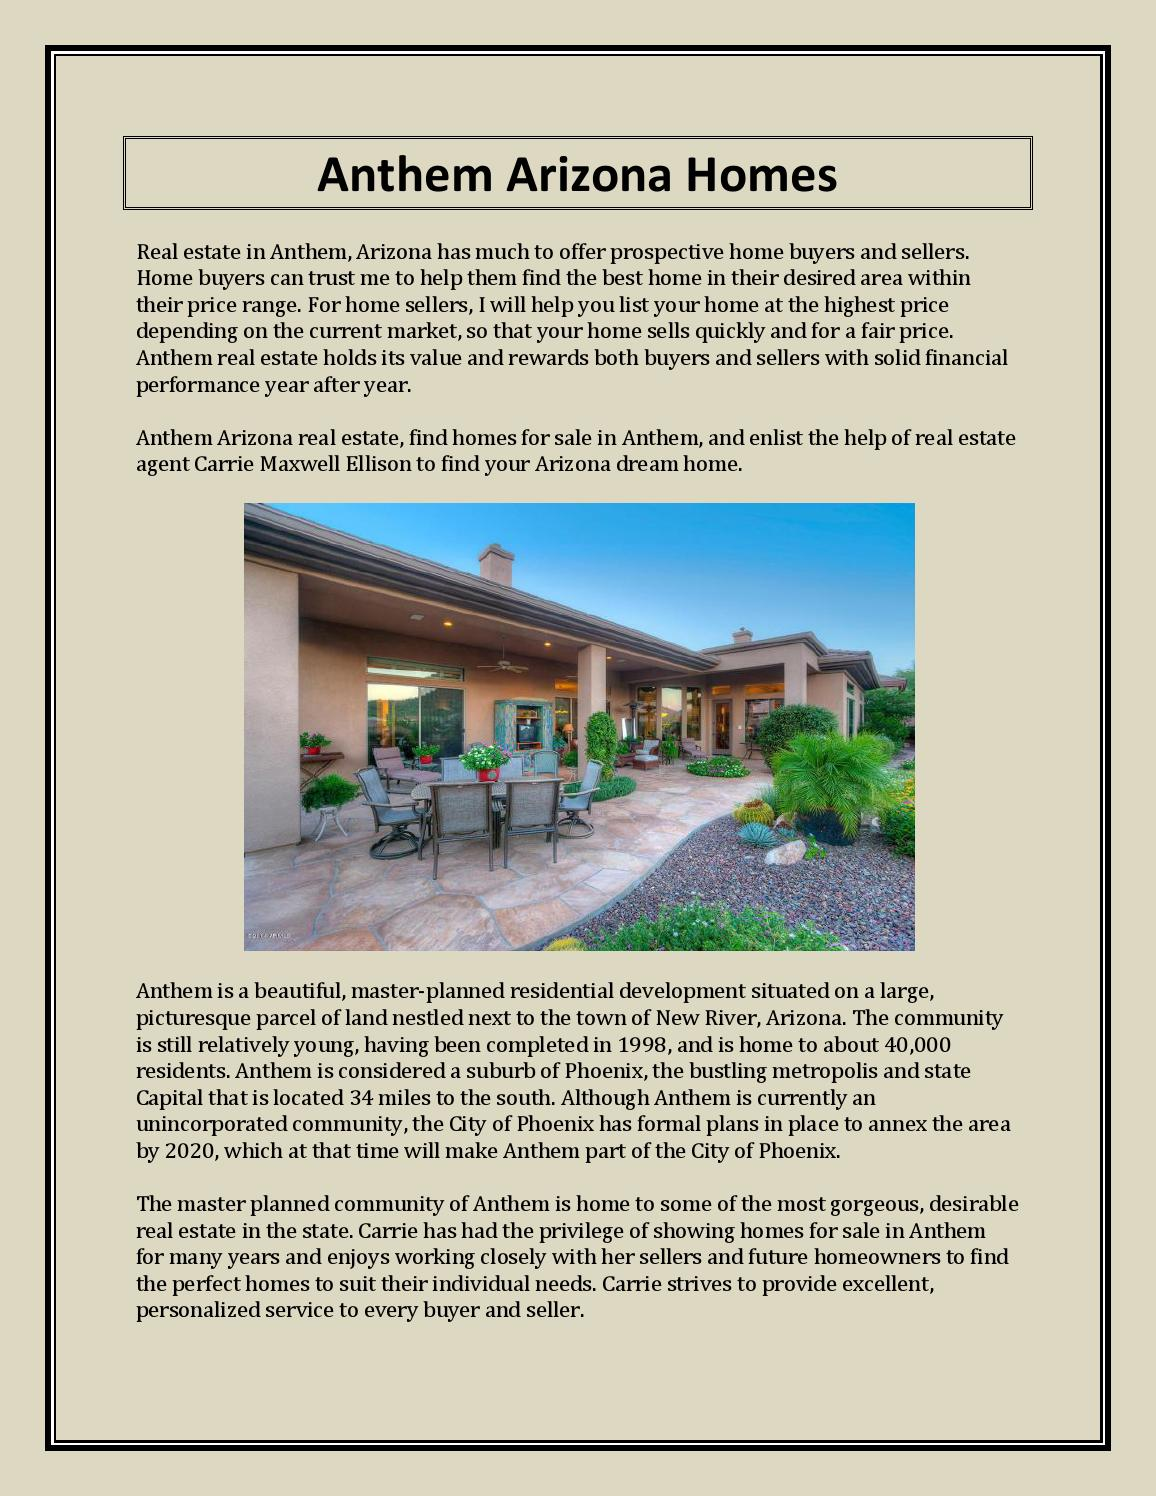 Anthem arizona homes by anthem-arizona - issuu